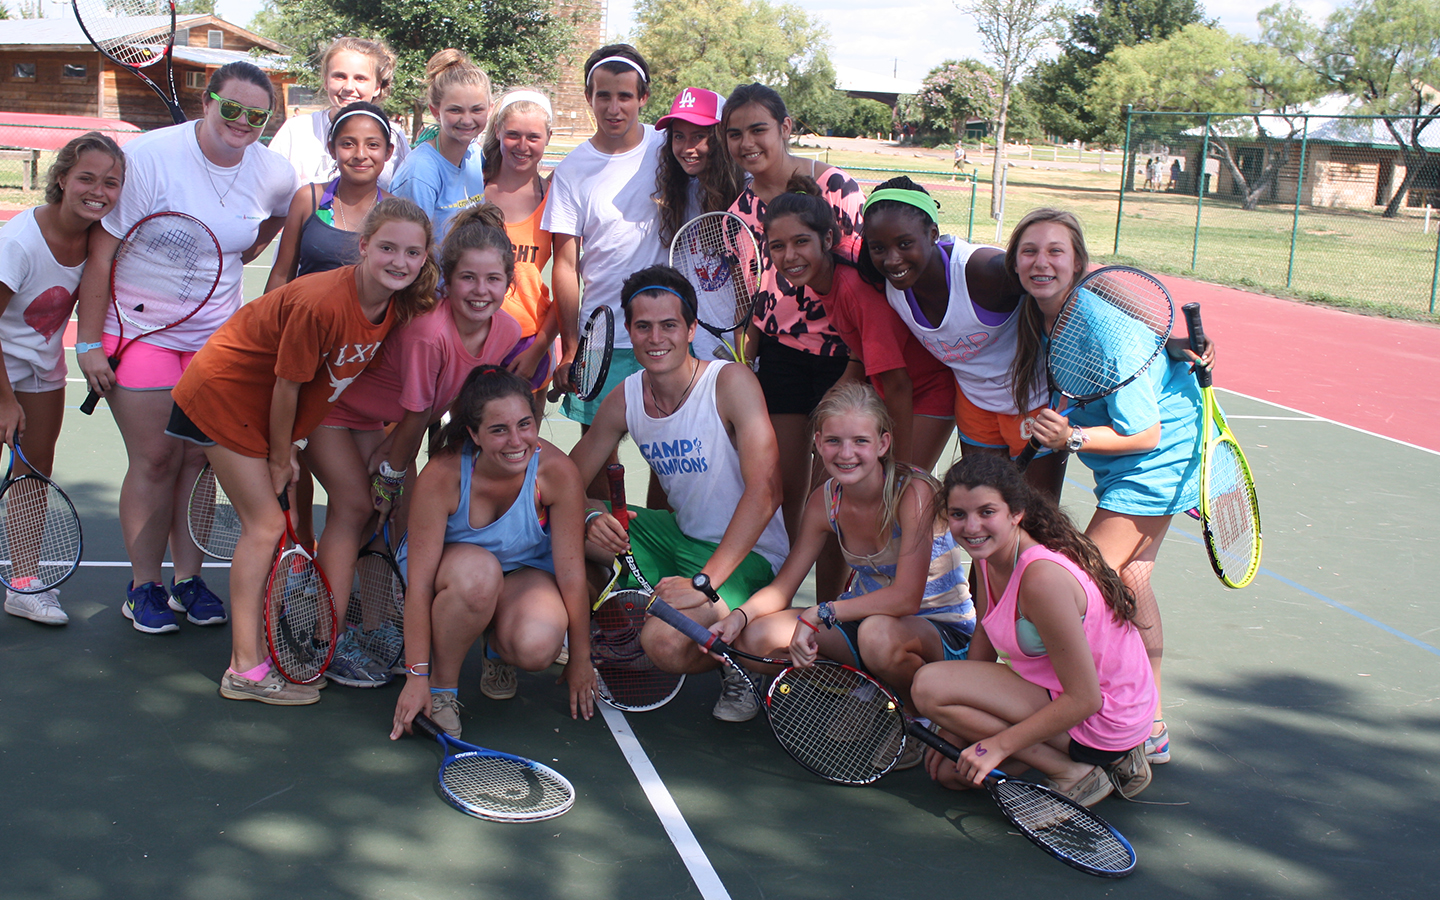 Tennis Camp Champions Texas Summer Camp Activities